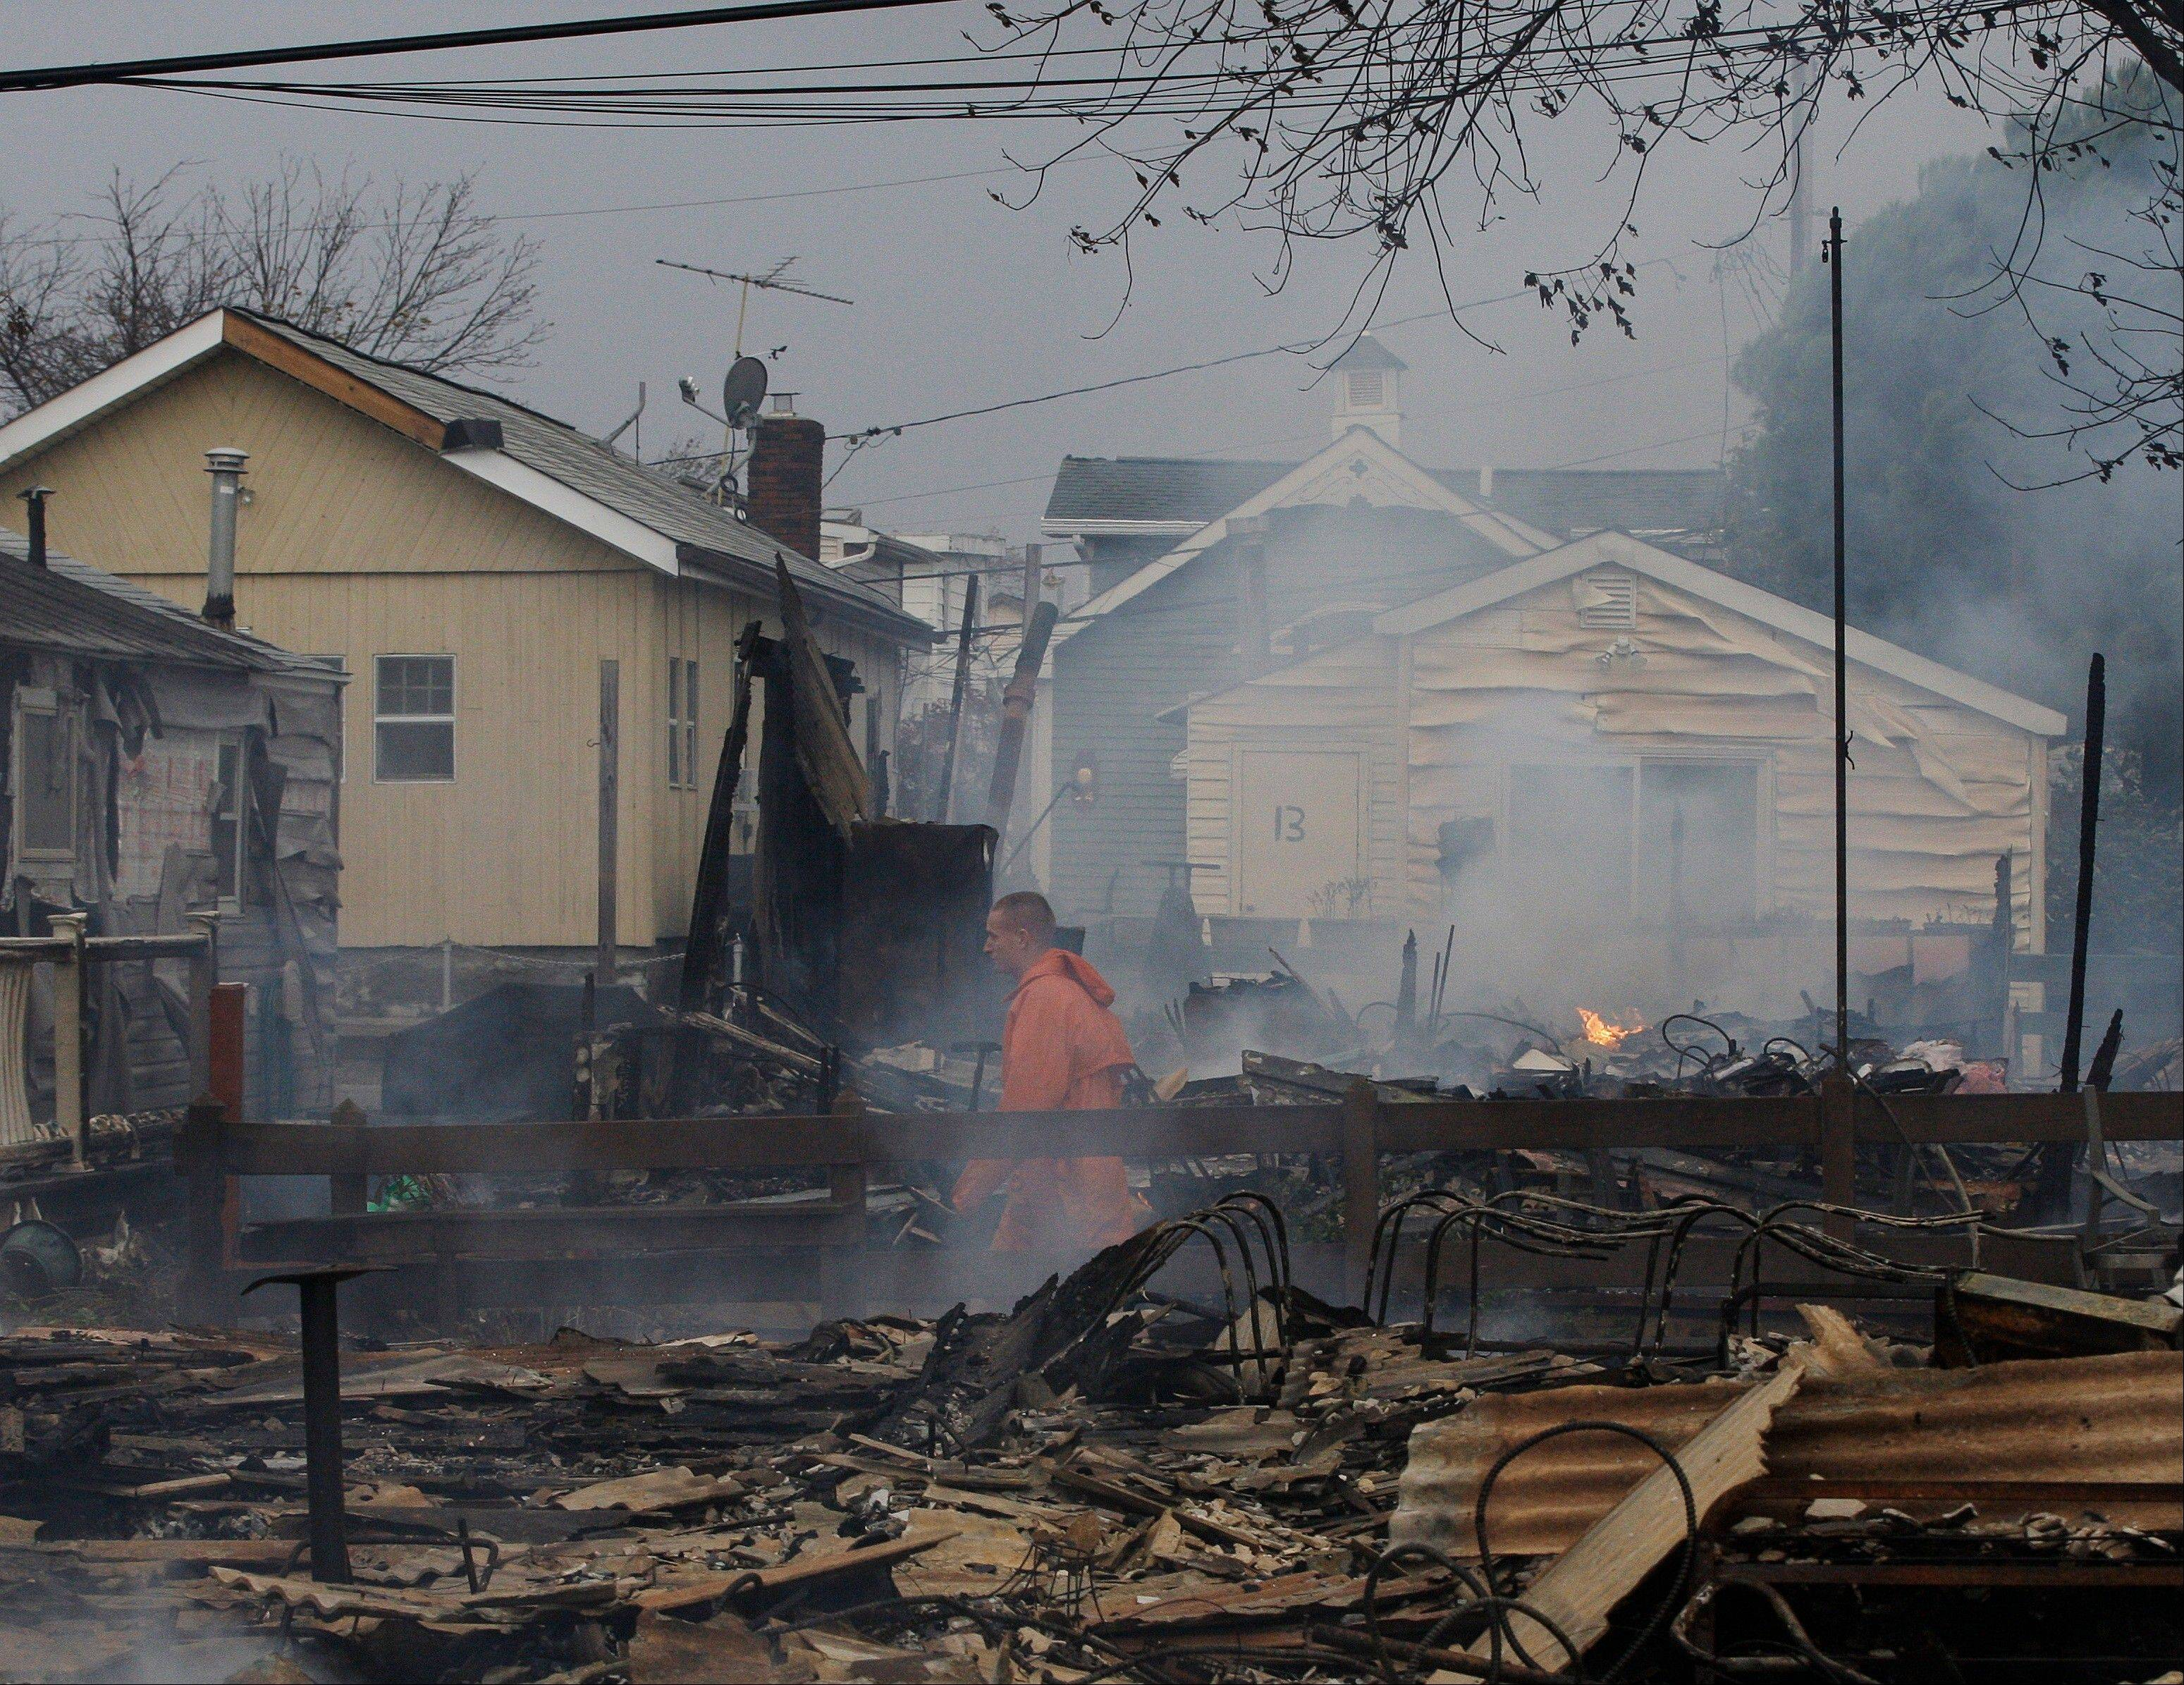 Keith Klein walks through homes damaged by a fire at Breezy Point in the New York City borough of Queens. Tuesday, Oct. 30, 2012. The fire destroyed between 80 and 100 houses Monday night in an area flooded by the superstorm that began sweeping through earlier.